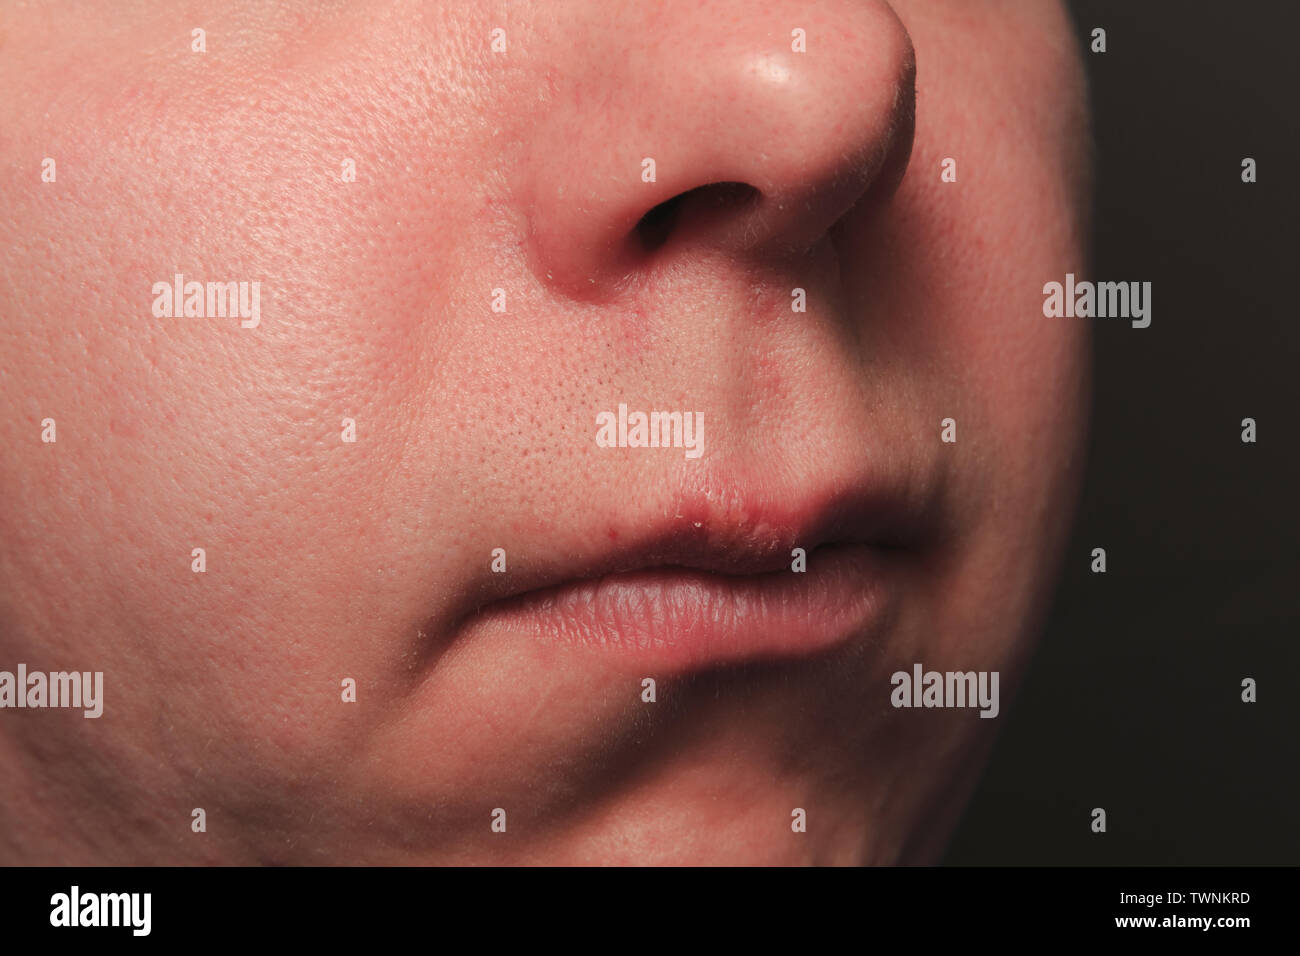 Upper Lip Stock Photos & Upper Lip Stock Images - Page 2 - Alamy